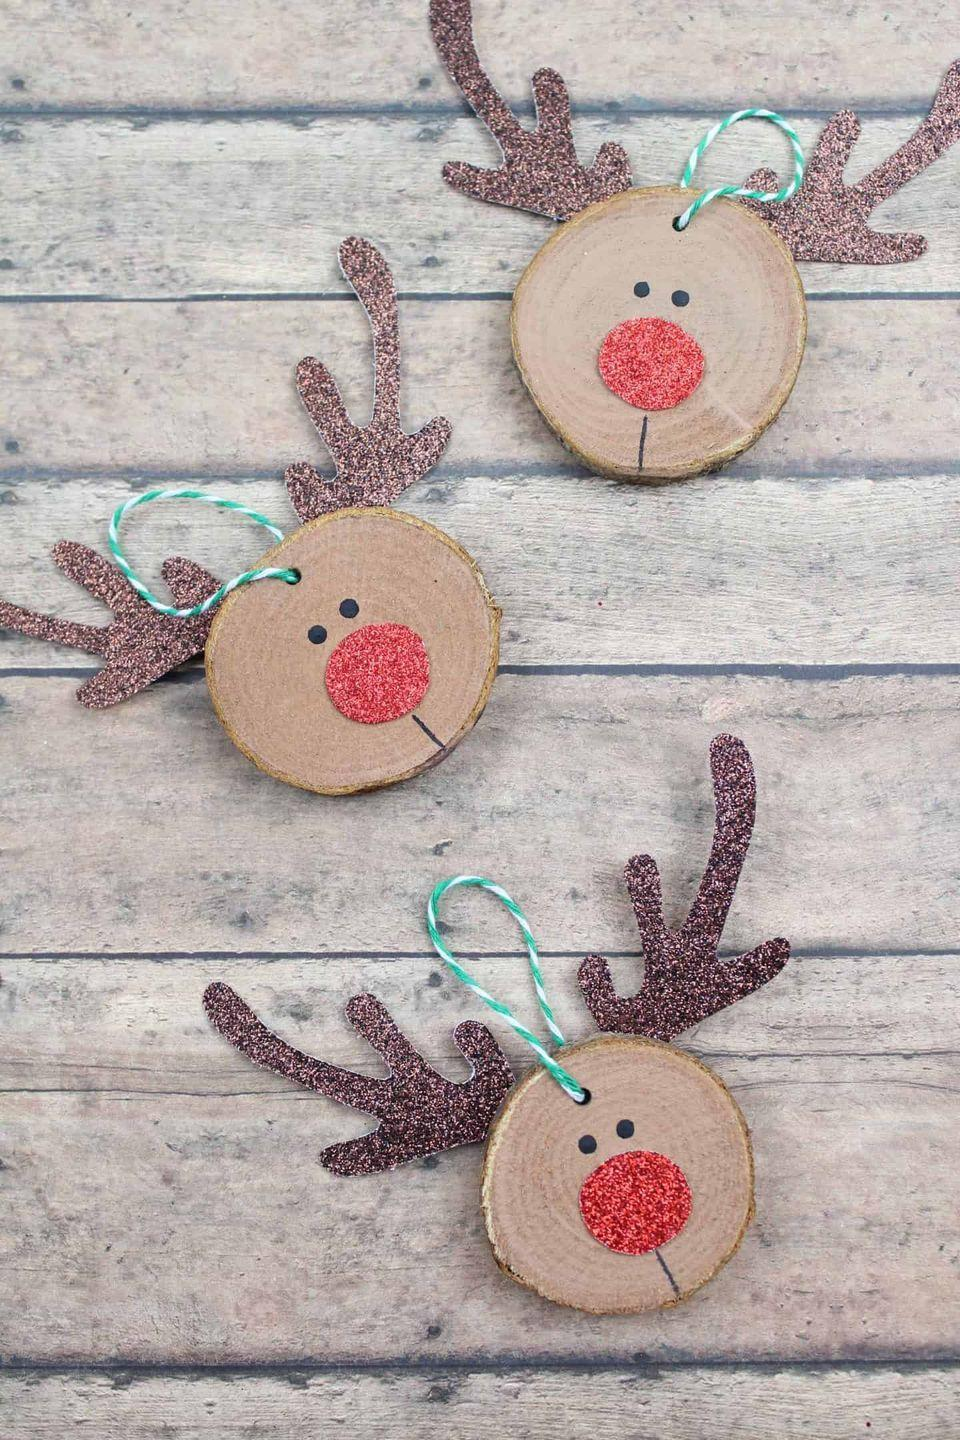 "<p>It's a snap to make these cute Rudolph ornaments—plus, their sparkly red noses will look so pretty next to your twinkle lights!</p><p><strong>Get the tutorial at <a href=""https://www.theinspirationedit.com/rudolf-christmas-craft-diy-craft-for-kids/"" rel=""nofollow noopener"" target=""_blank"" data-ylk=""slk:The Inspiration Edit"" class=""link rapid-noclick-resp"">The Inspiration Edit</a>.</strong></p><p><a class=""link rapid-noclick-resp"" href=""https://www.amazon.com/Unfinished-Craft-Christmas-Ornaments-William/dp/B07FZM1GKQ/ref=sr_1_5?tag=syn-yahoo-20&ascsubtag=%5Bartid%7C10050.g.1070%5Bsrc%7Cyahoo-us"" rel=""nofollow noopener"" target=""_blank"" data-ylk=""slk:SHOP WOOD SLICES"">SHOP WOOD SLICES</a><br></p>"